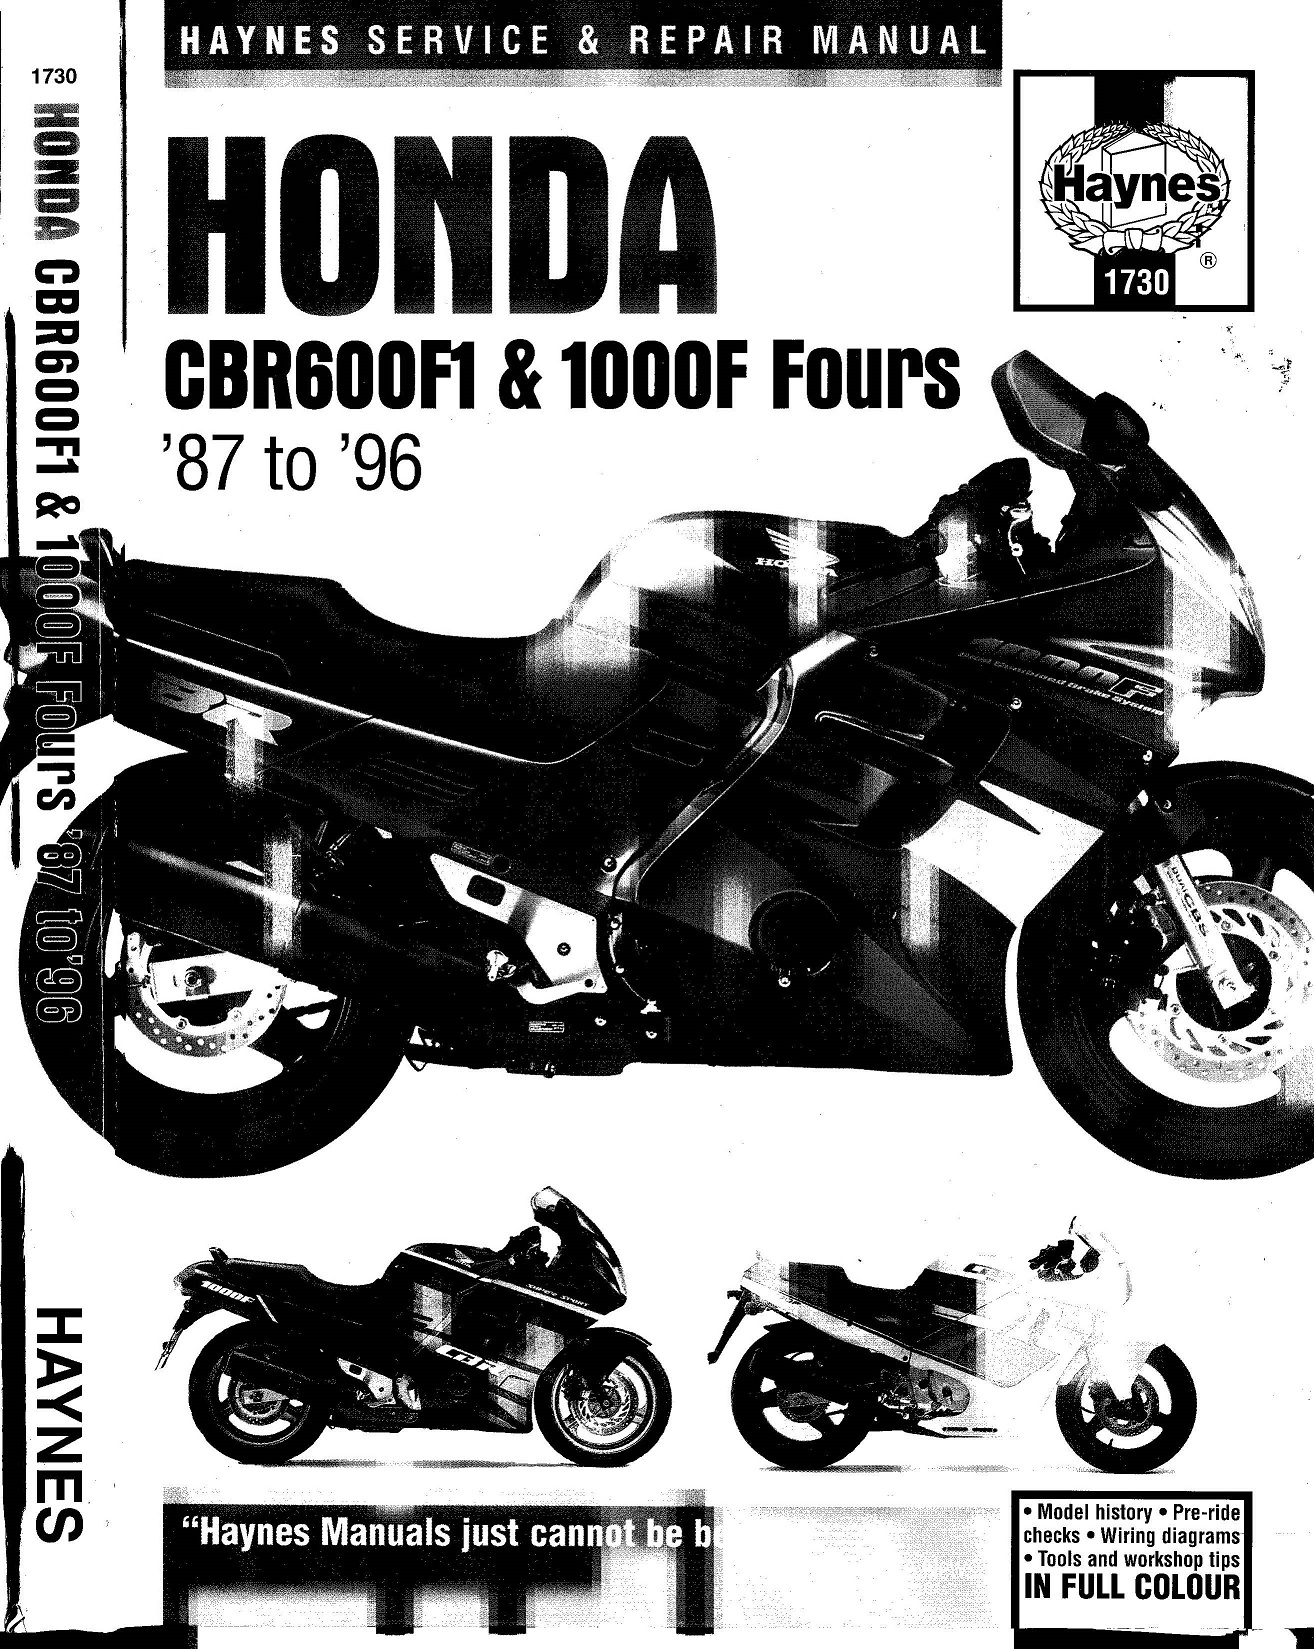 Workshop manual for Honda CBR1000F (1987-1996)